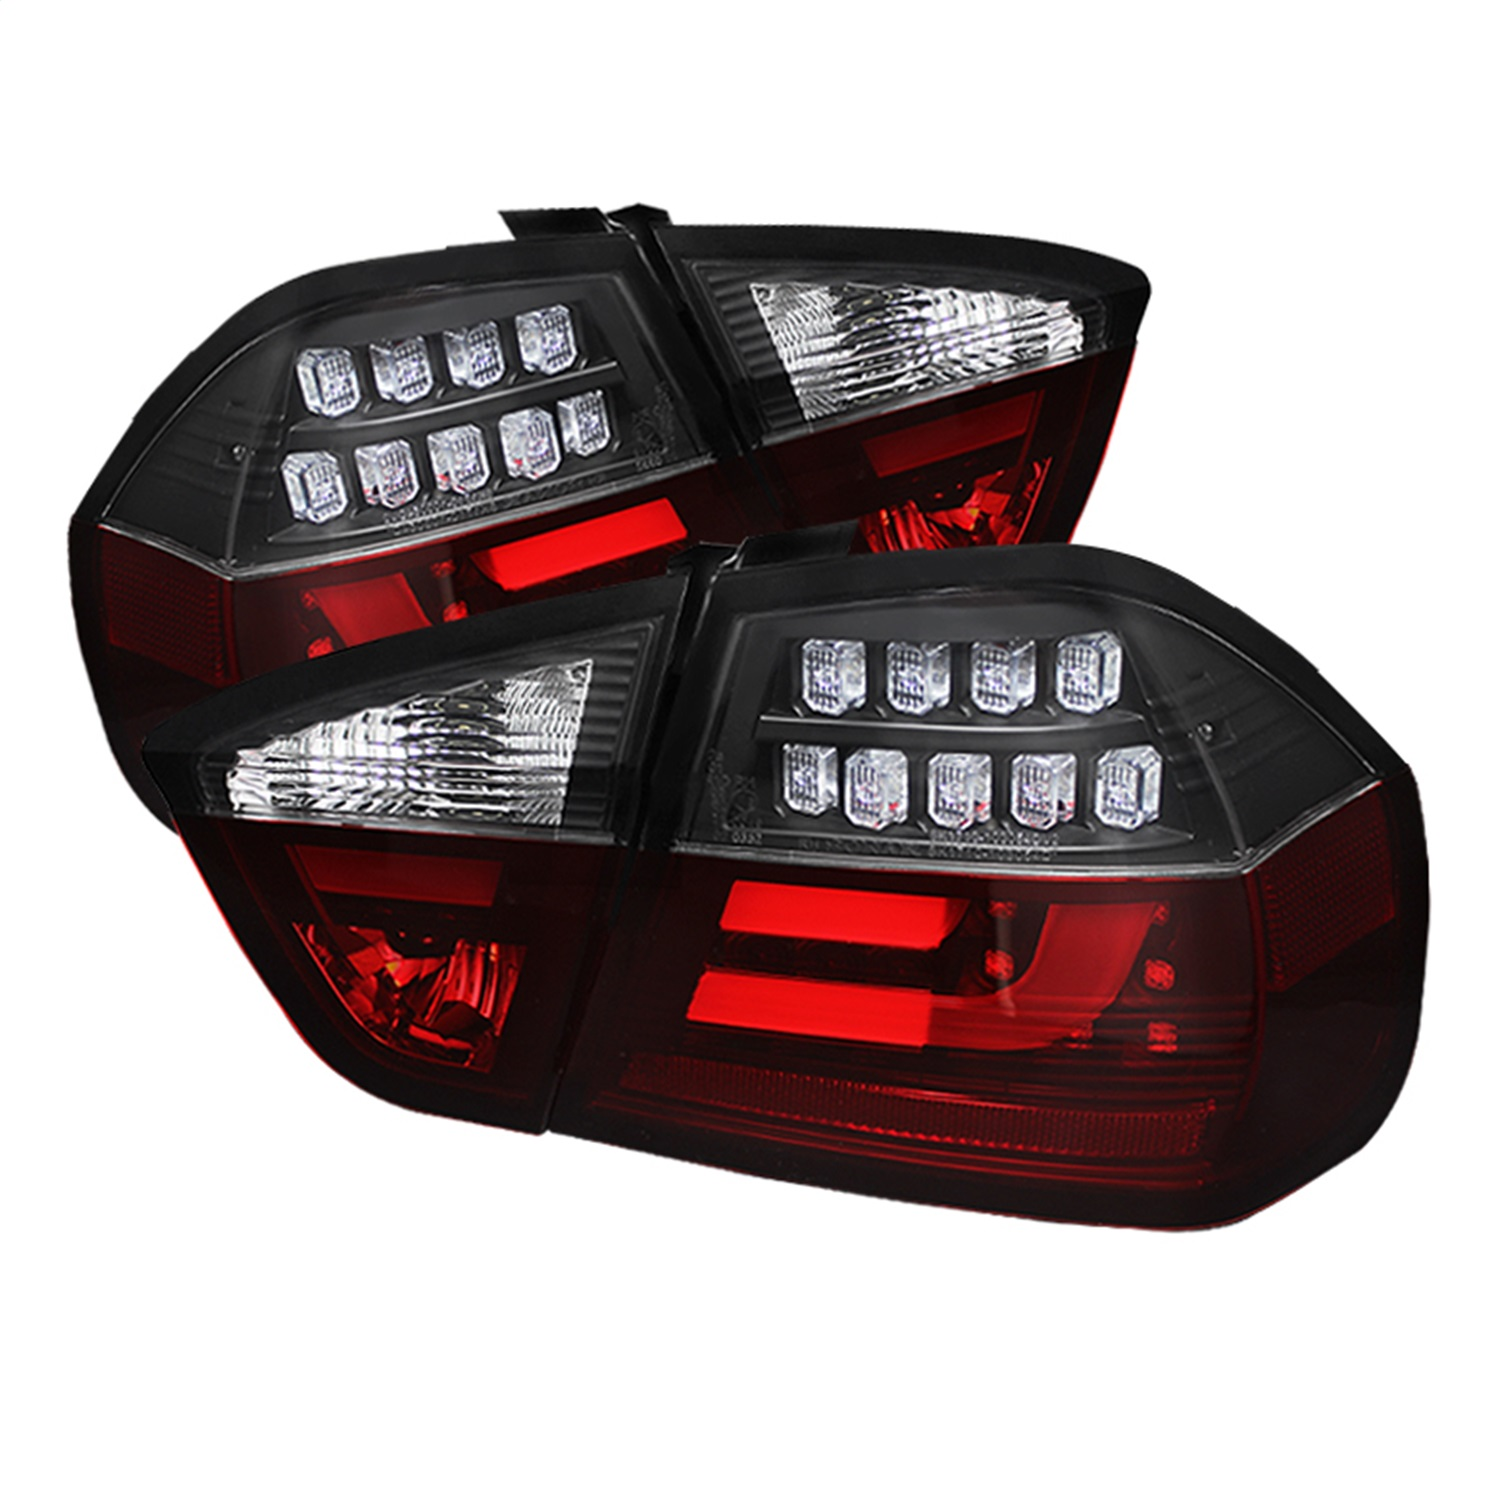 Spyder Auto 5071958 LED Indicator Light Bar LED Tail Lights